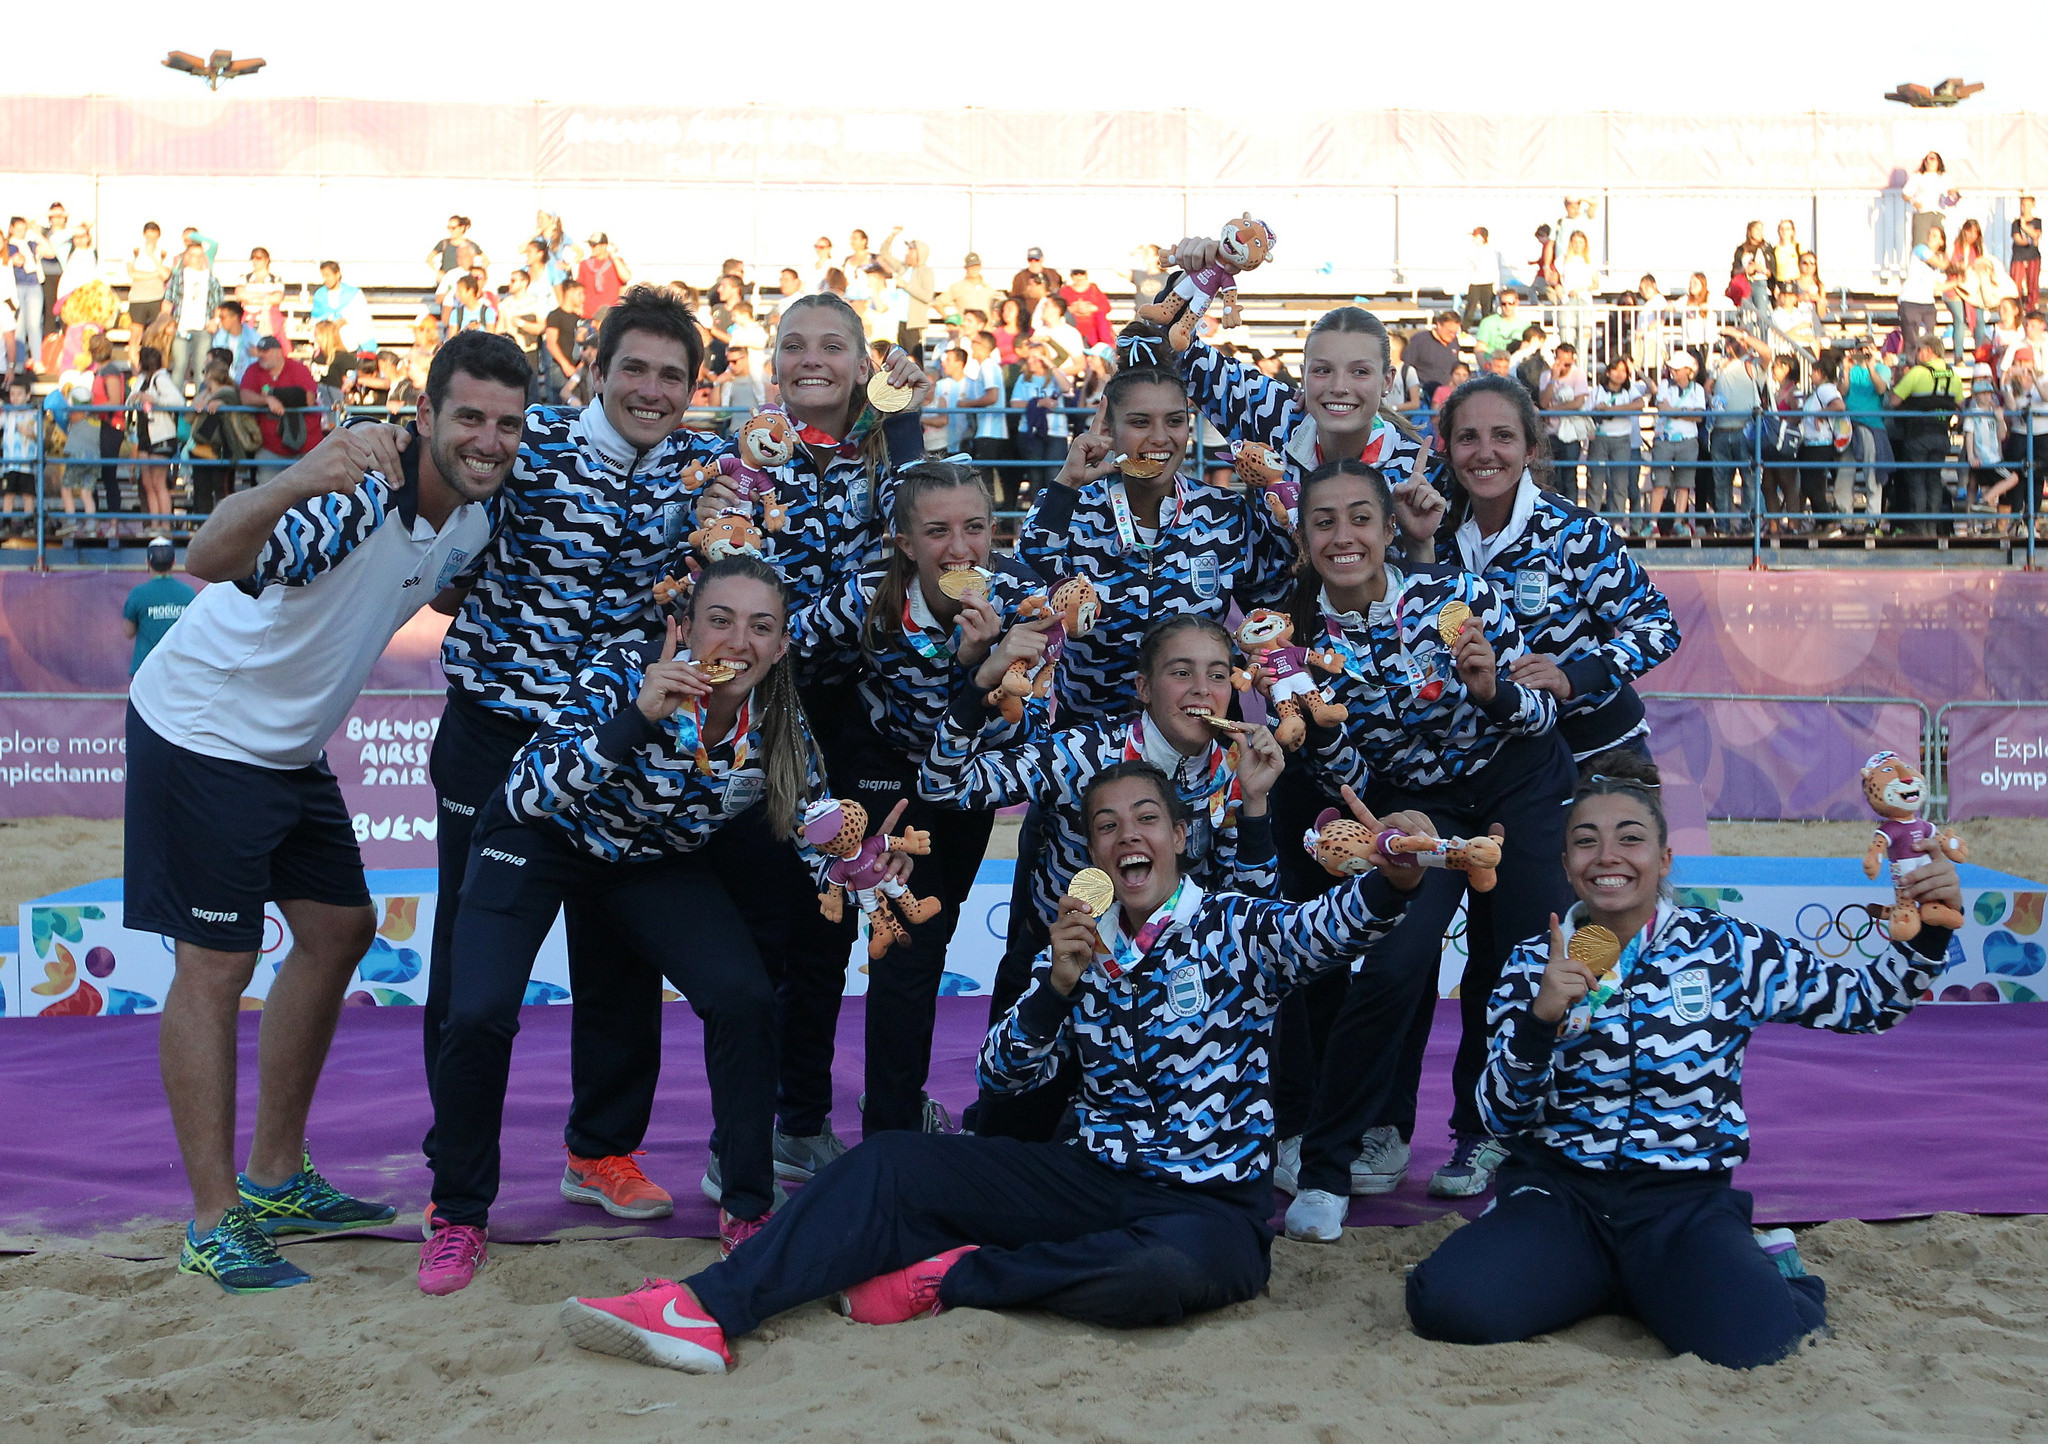 Beach handball champions crowned as China find form on day seven at Buenos Aires 2018